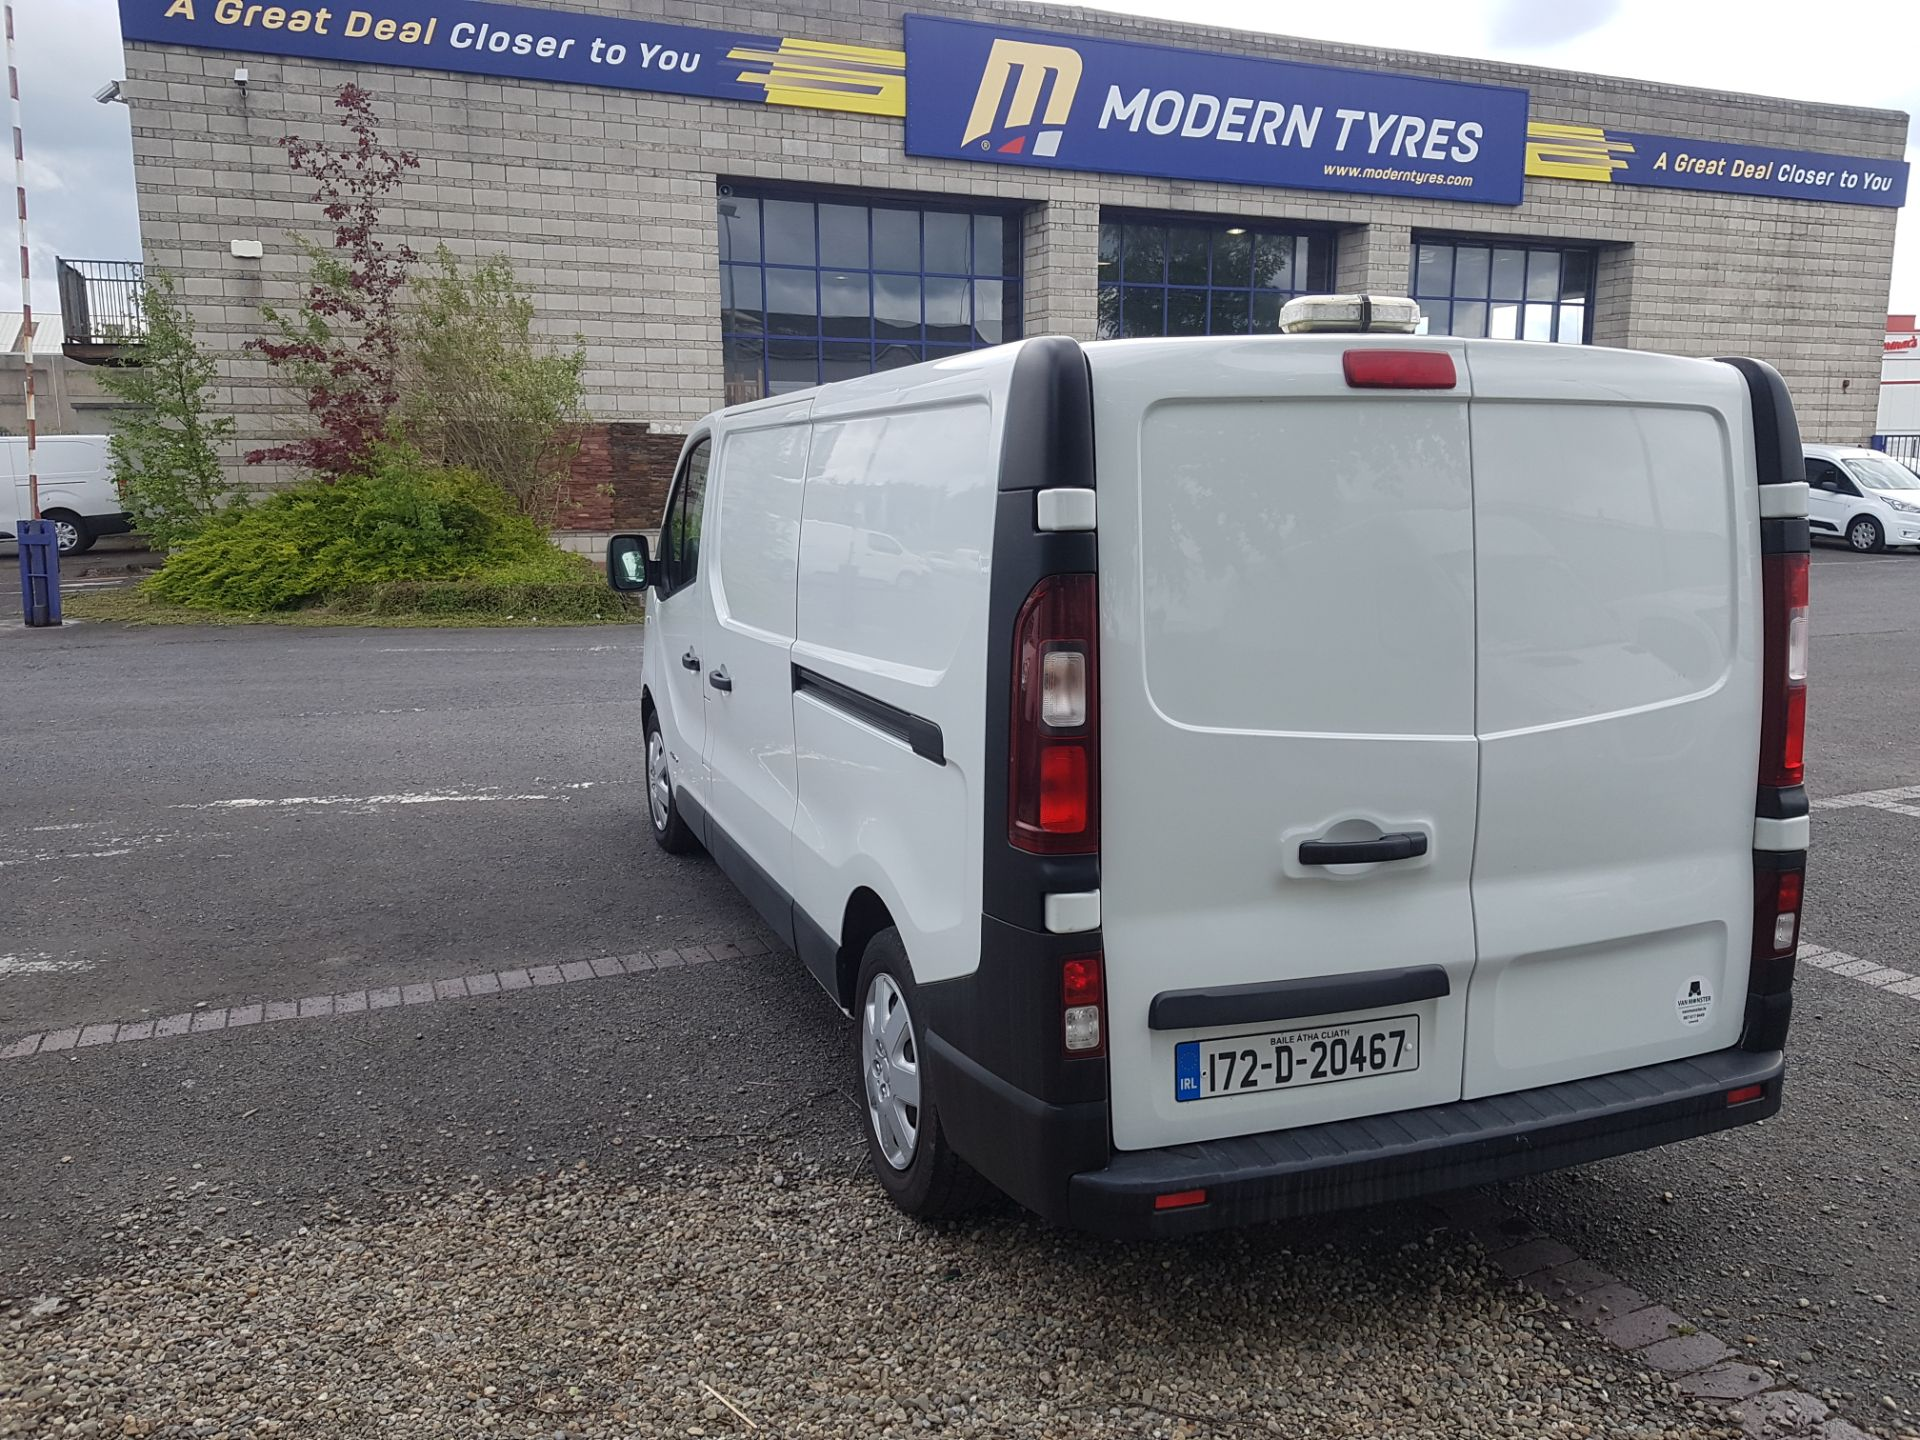 2017 Renault Trafic LL29 DCI 120 Business 3DR (172D20467) Image 5